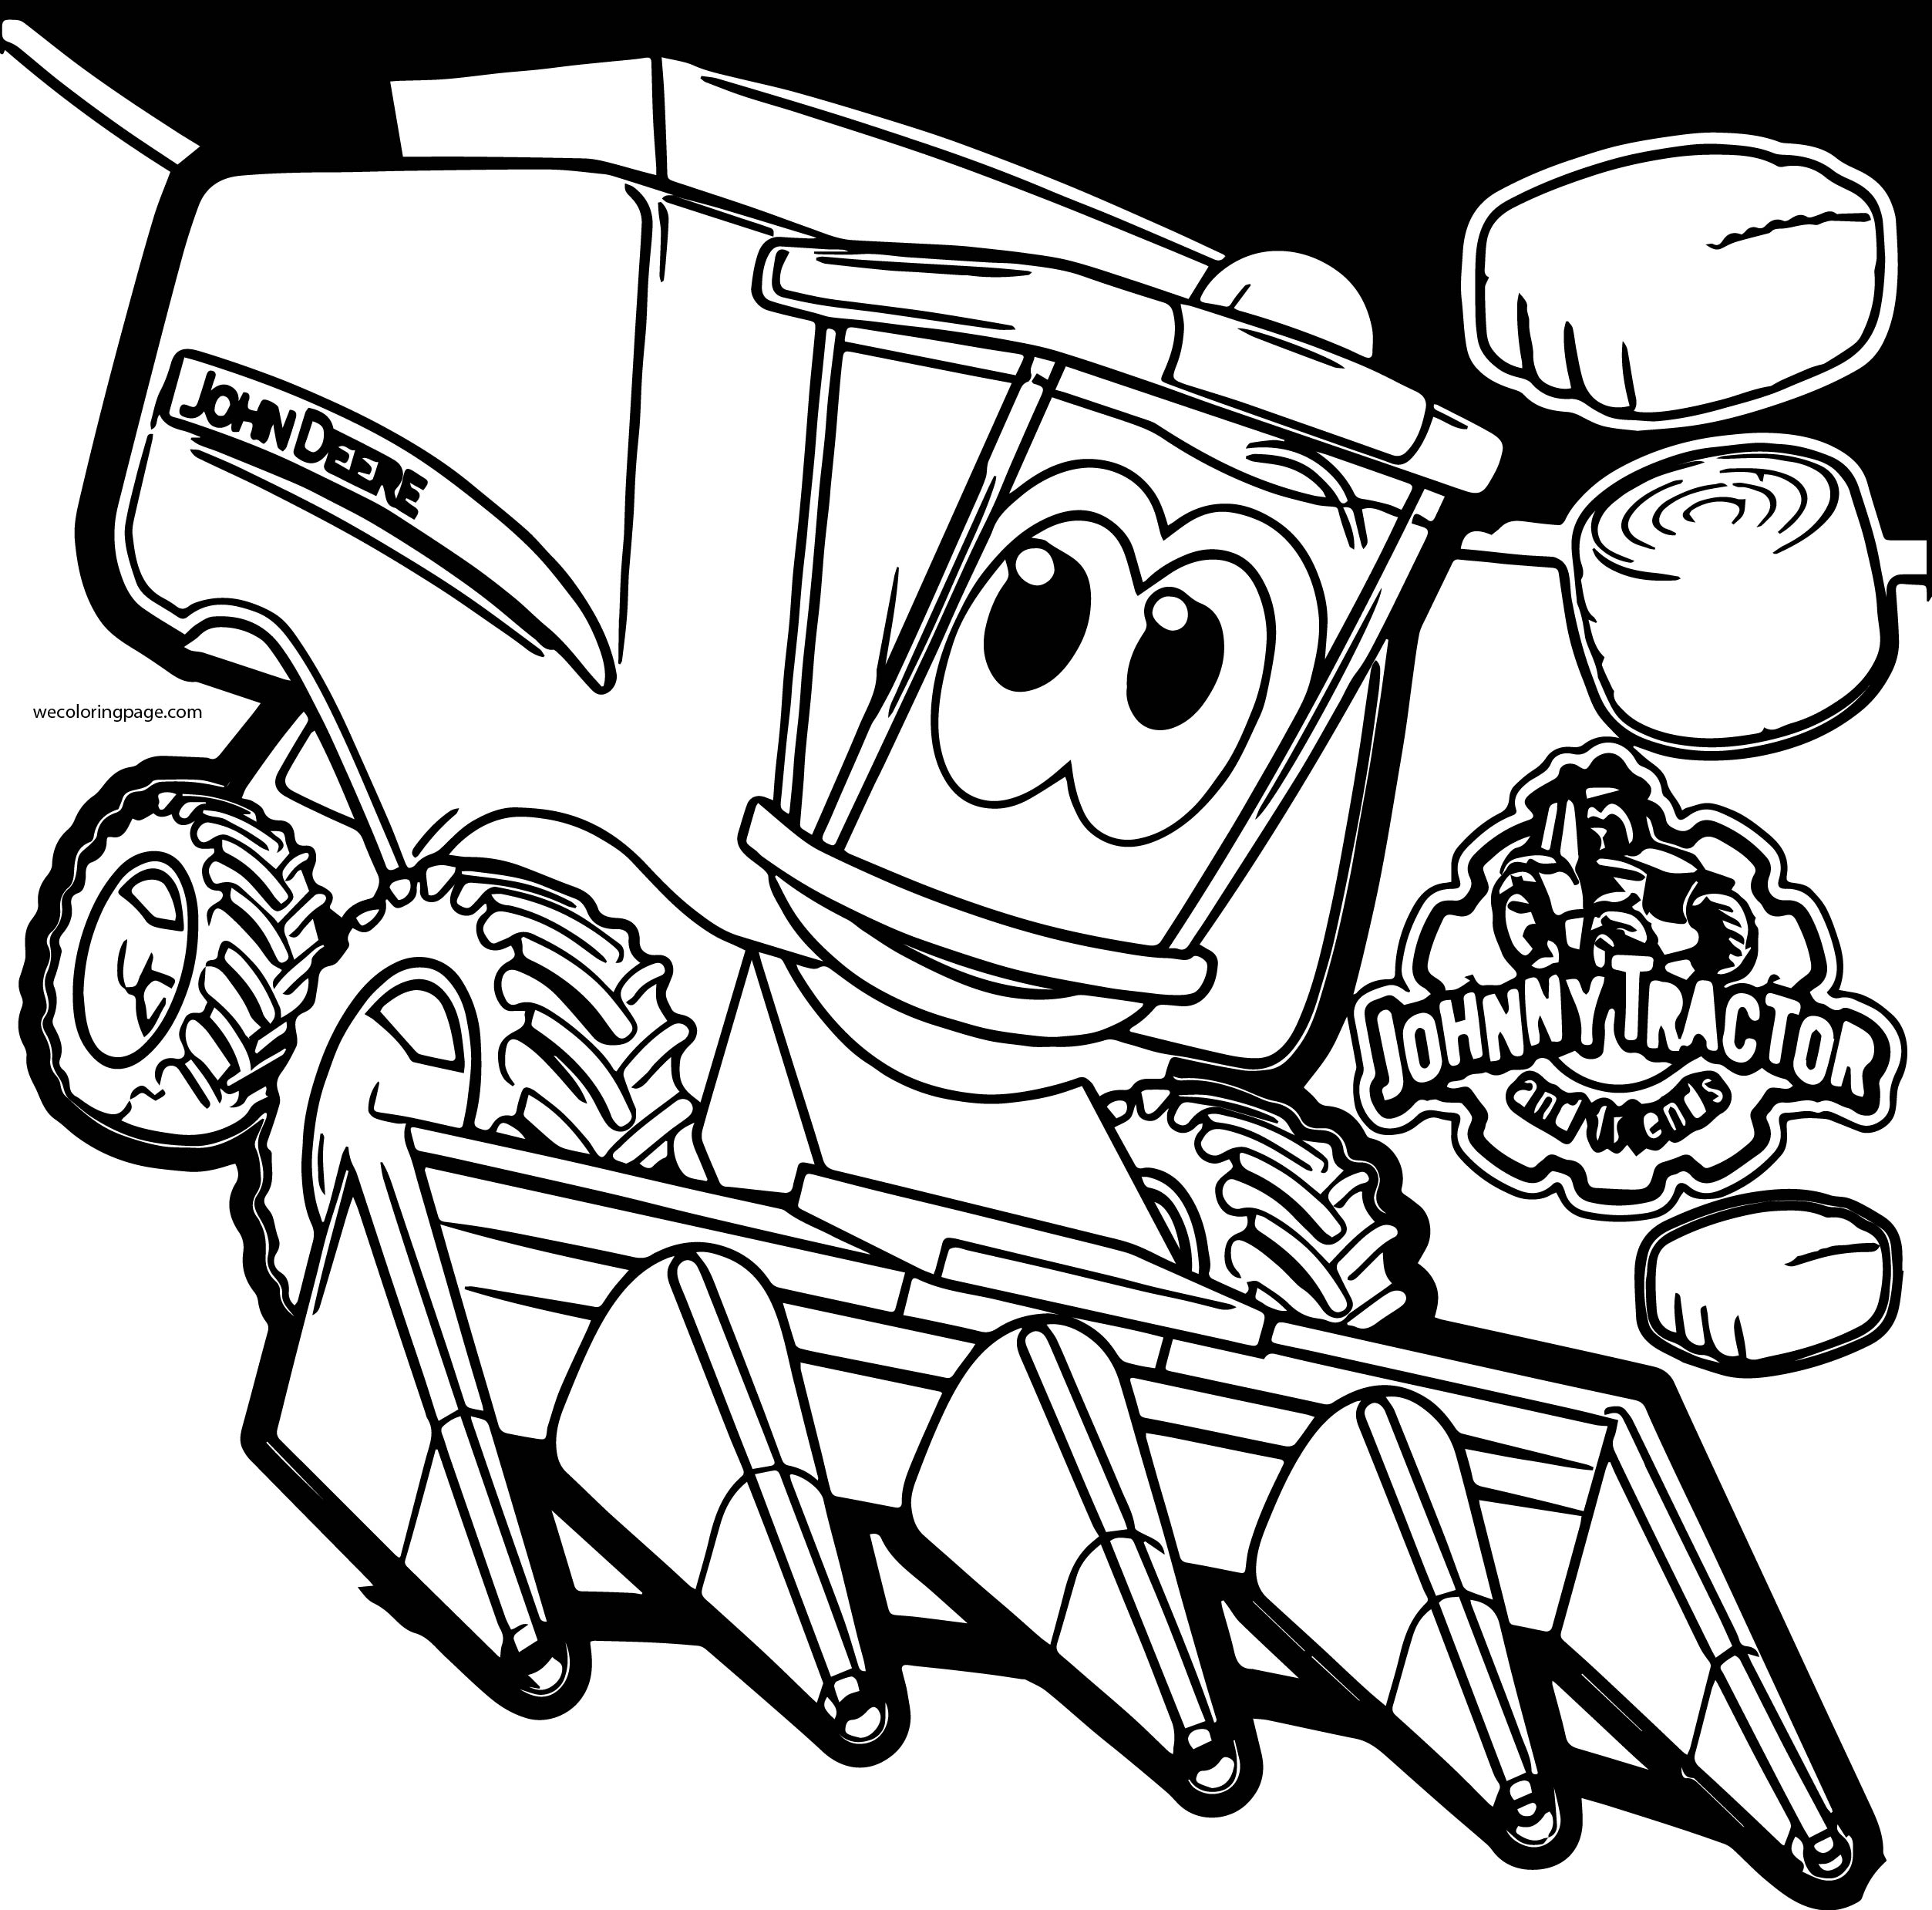 John Johnny Deere Tractor Coloring Page WeColoringPage 33